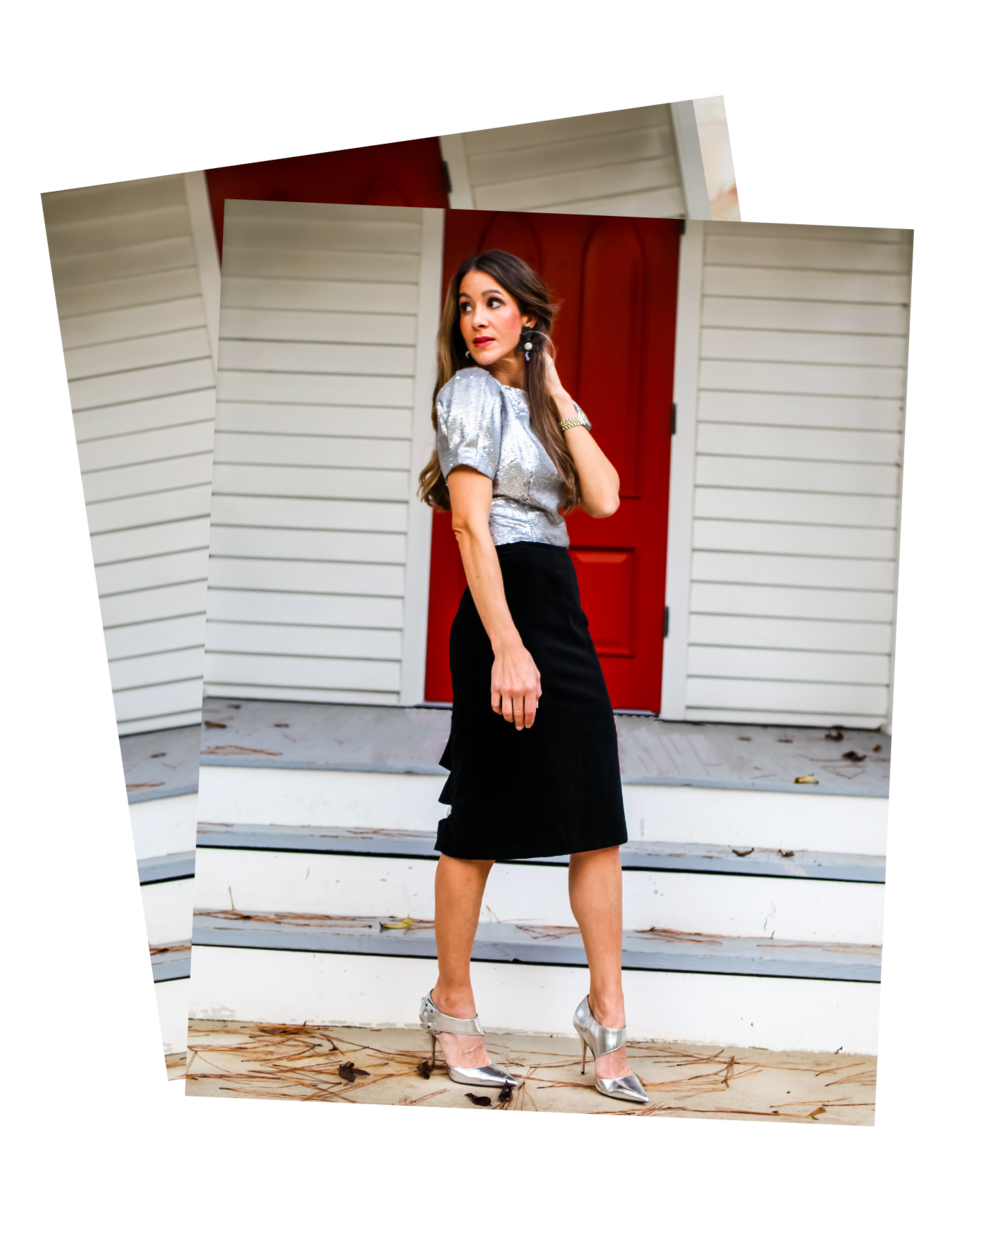 12 DAYS OF HOLIDAY LOOKS - It's the most wonderful time of the year……(cue all the classic Christmas music please!) I'm putting together 12 days of Holiday looks that you can wear to any of those upcoming events you've been invited to. Sure, you can always wear that LBD as a classic go to for any and all events, but why be BASIC, when you can add a little color and sparkle like these looks that will give that LBD a run for its money and have you looking all kinds of festive! And for the Holidays, I like to remember my girl Iris Apfel's quote…….